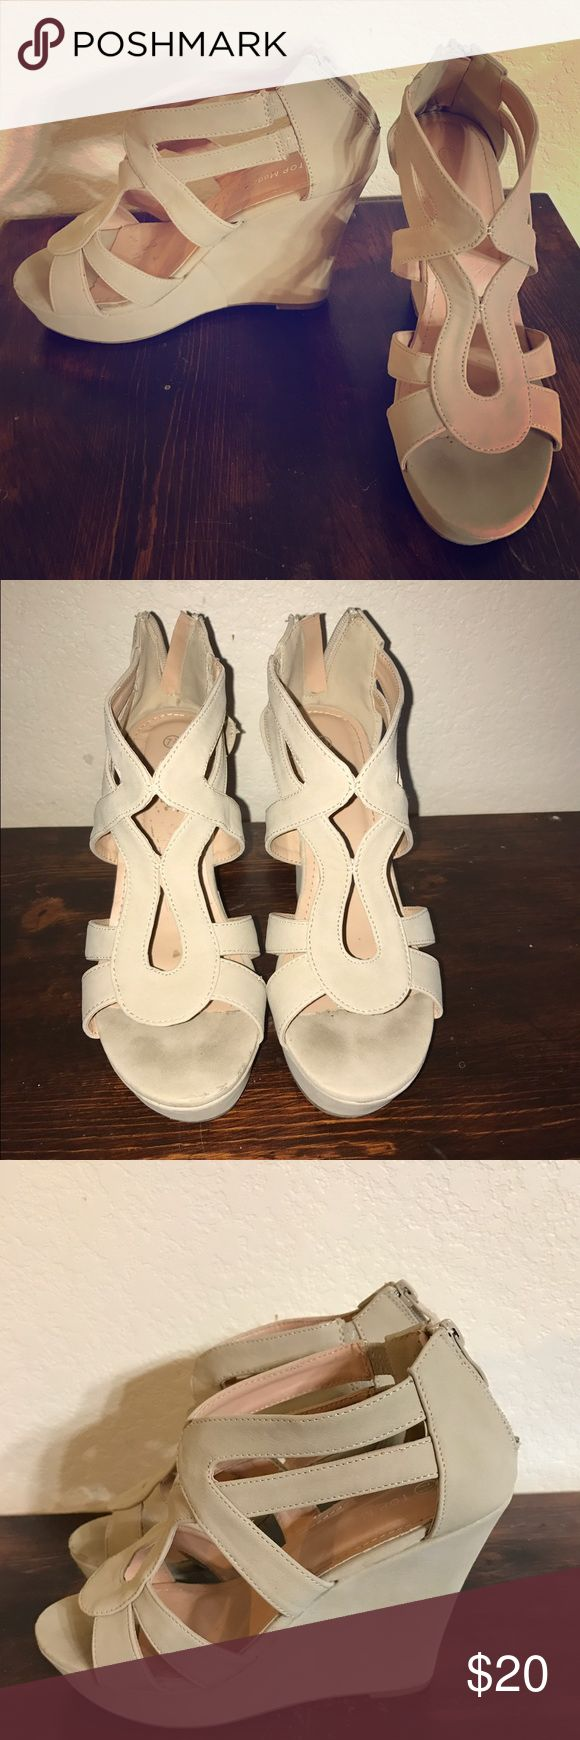 Top Moda Beige Strappy Platform Wedges Strappy Platform Wedges. Size is 7.5 but run small, will fit a 6.5 - 7 shoe size. Top Moda Shoes Wedges